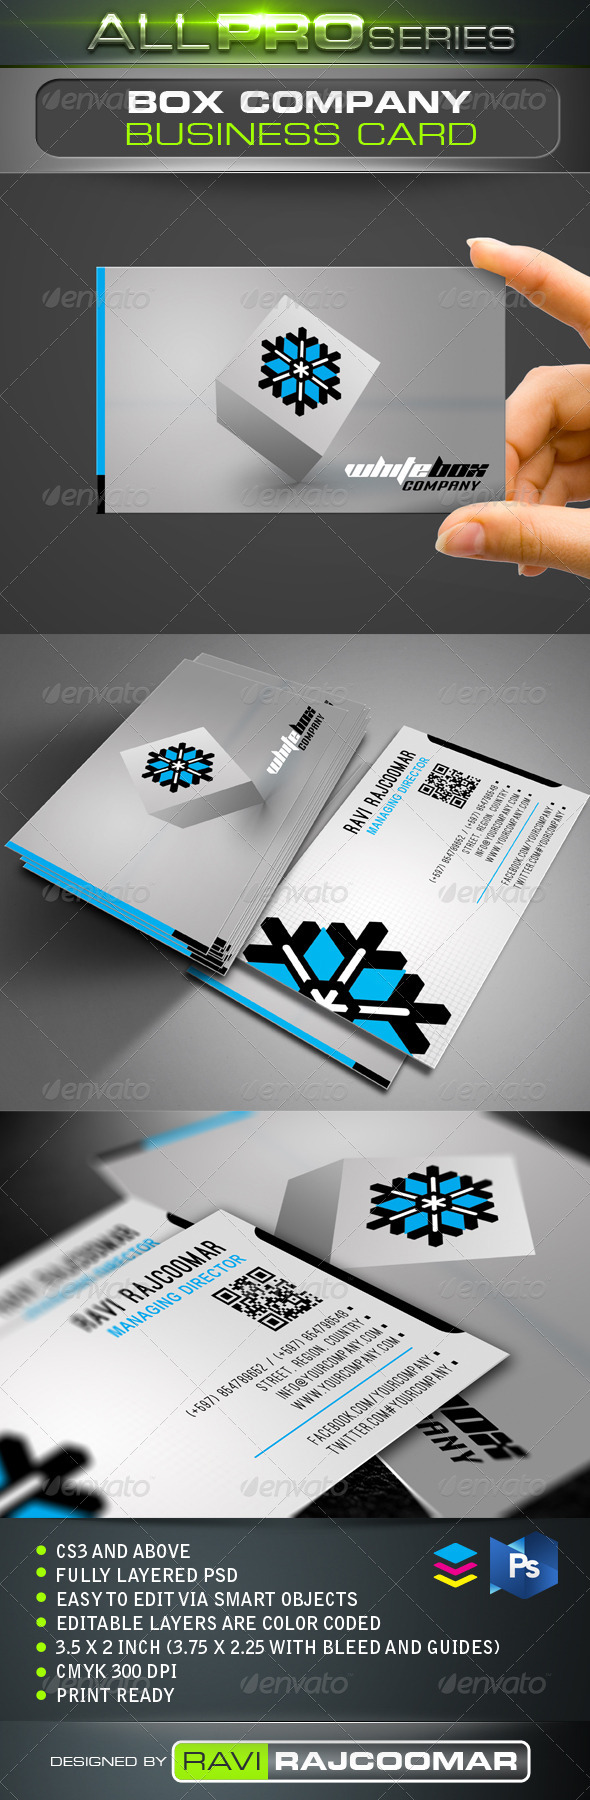 Box Company Business Card - Creative Business Cards